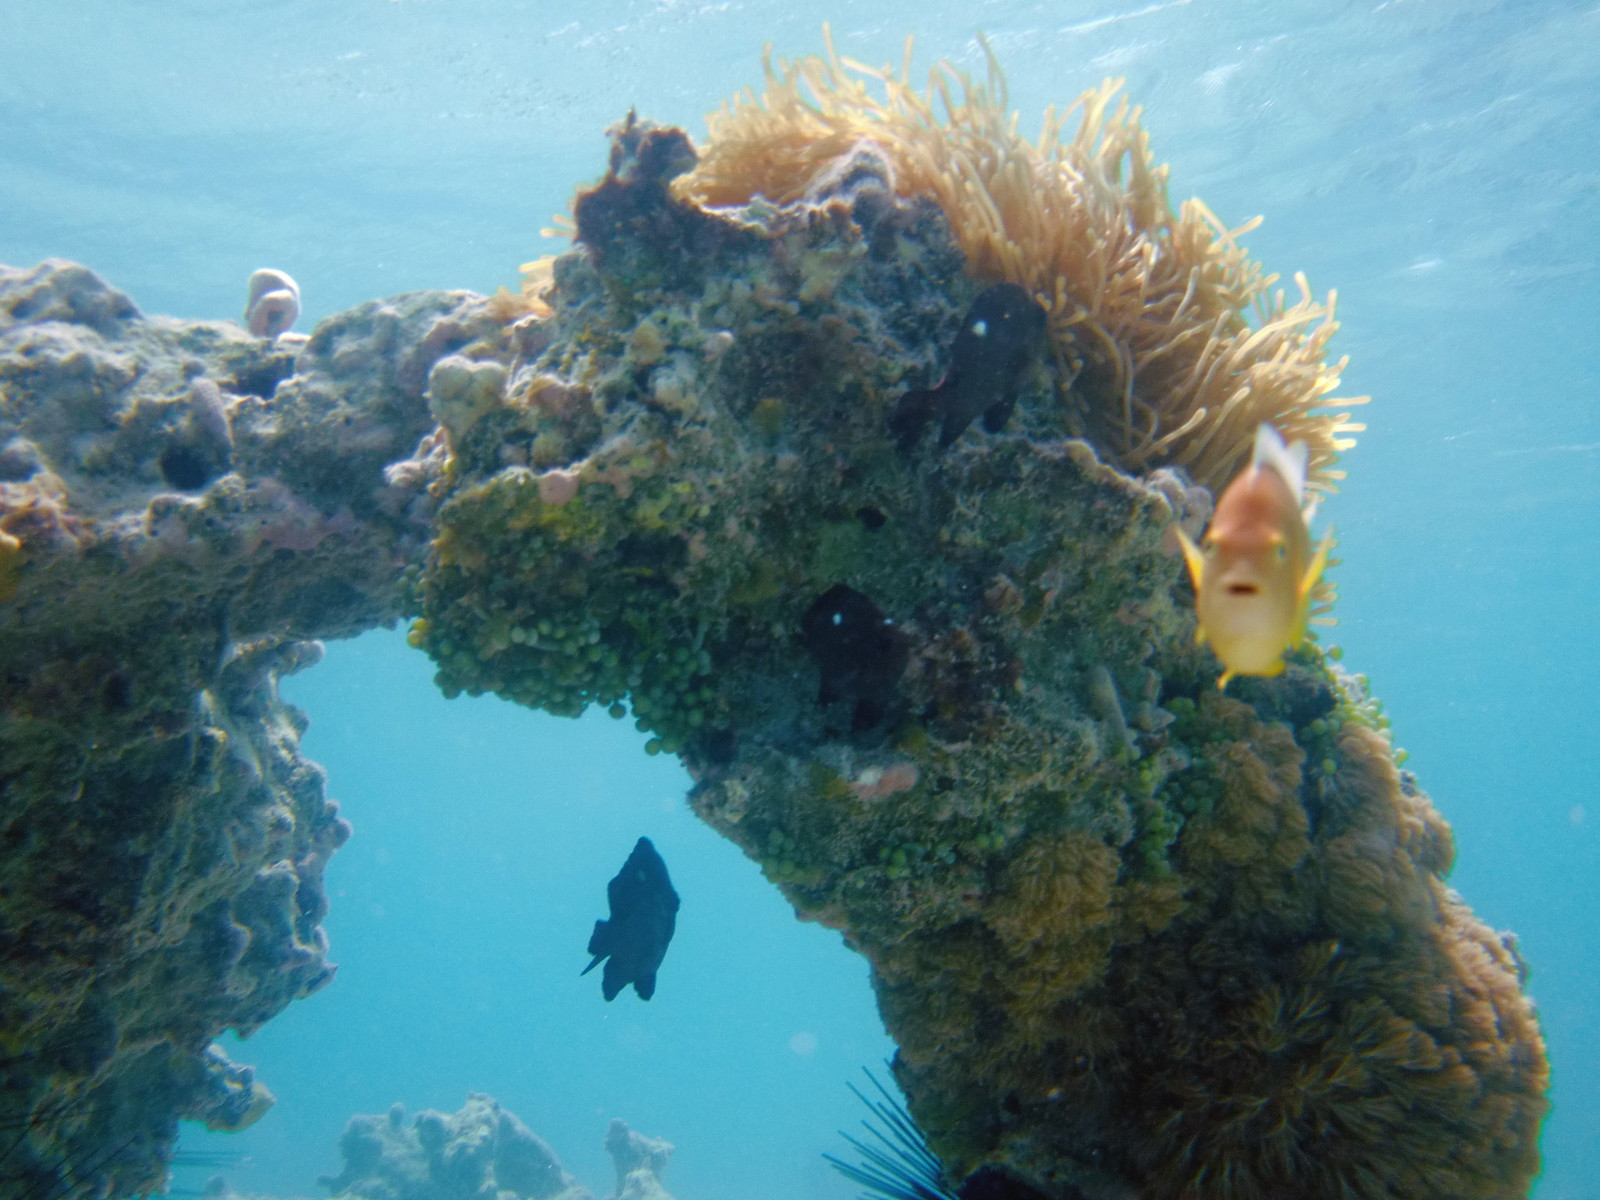 A clown fish photobombs the exquisite underwater coral formations.